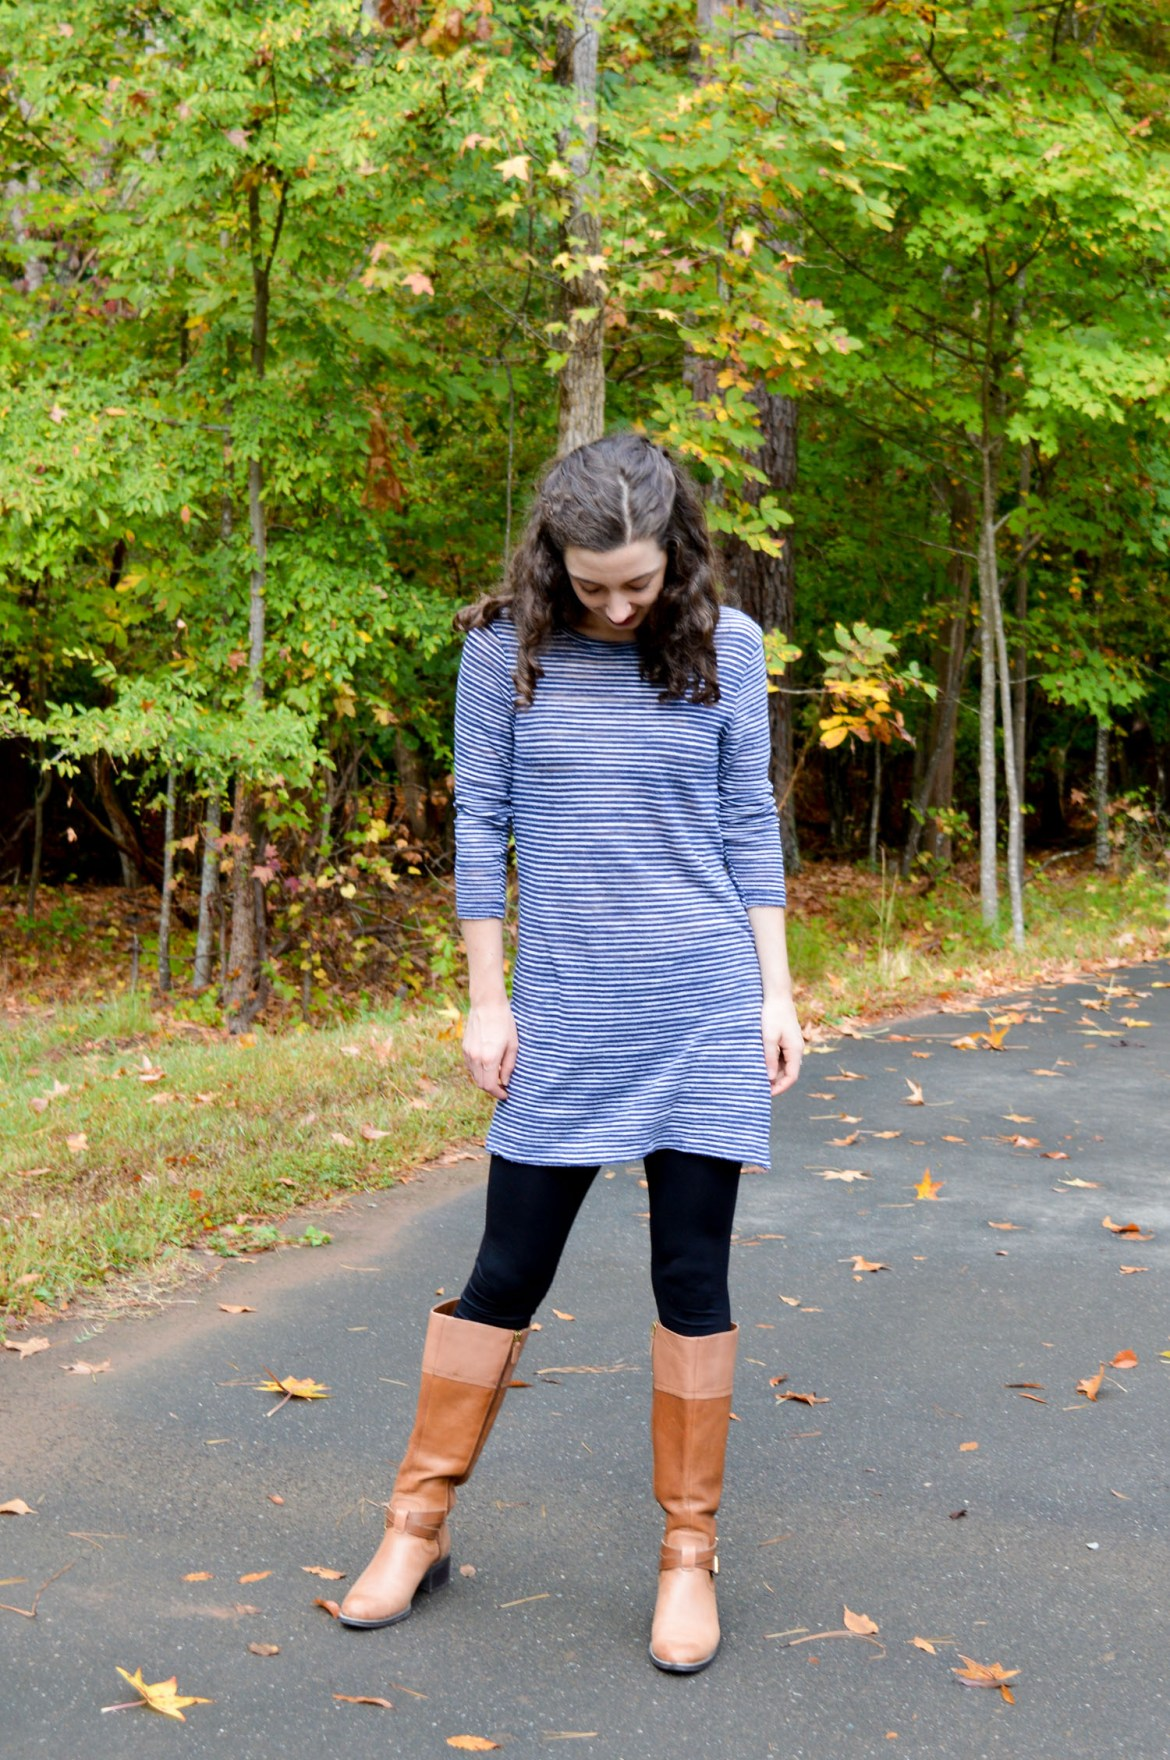 Tunic + leggings + riding boots | The fall outfit that makes you feel like you're wearing lounge clothes